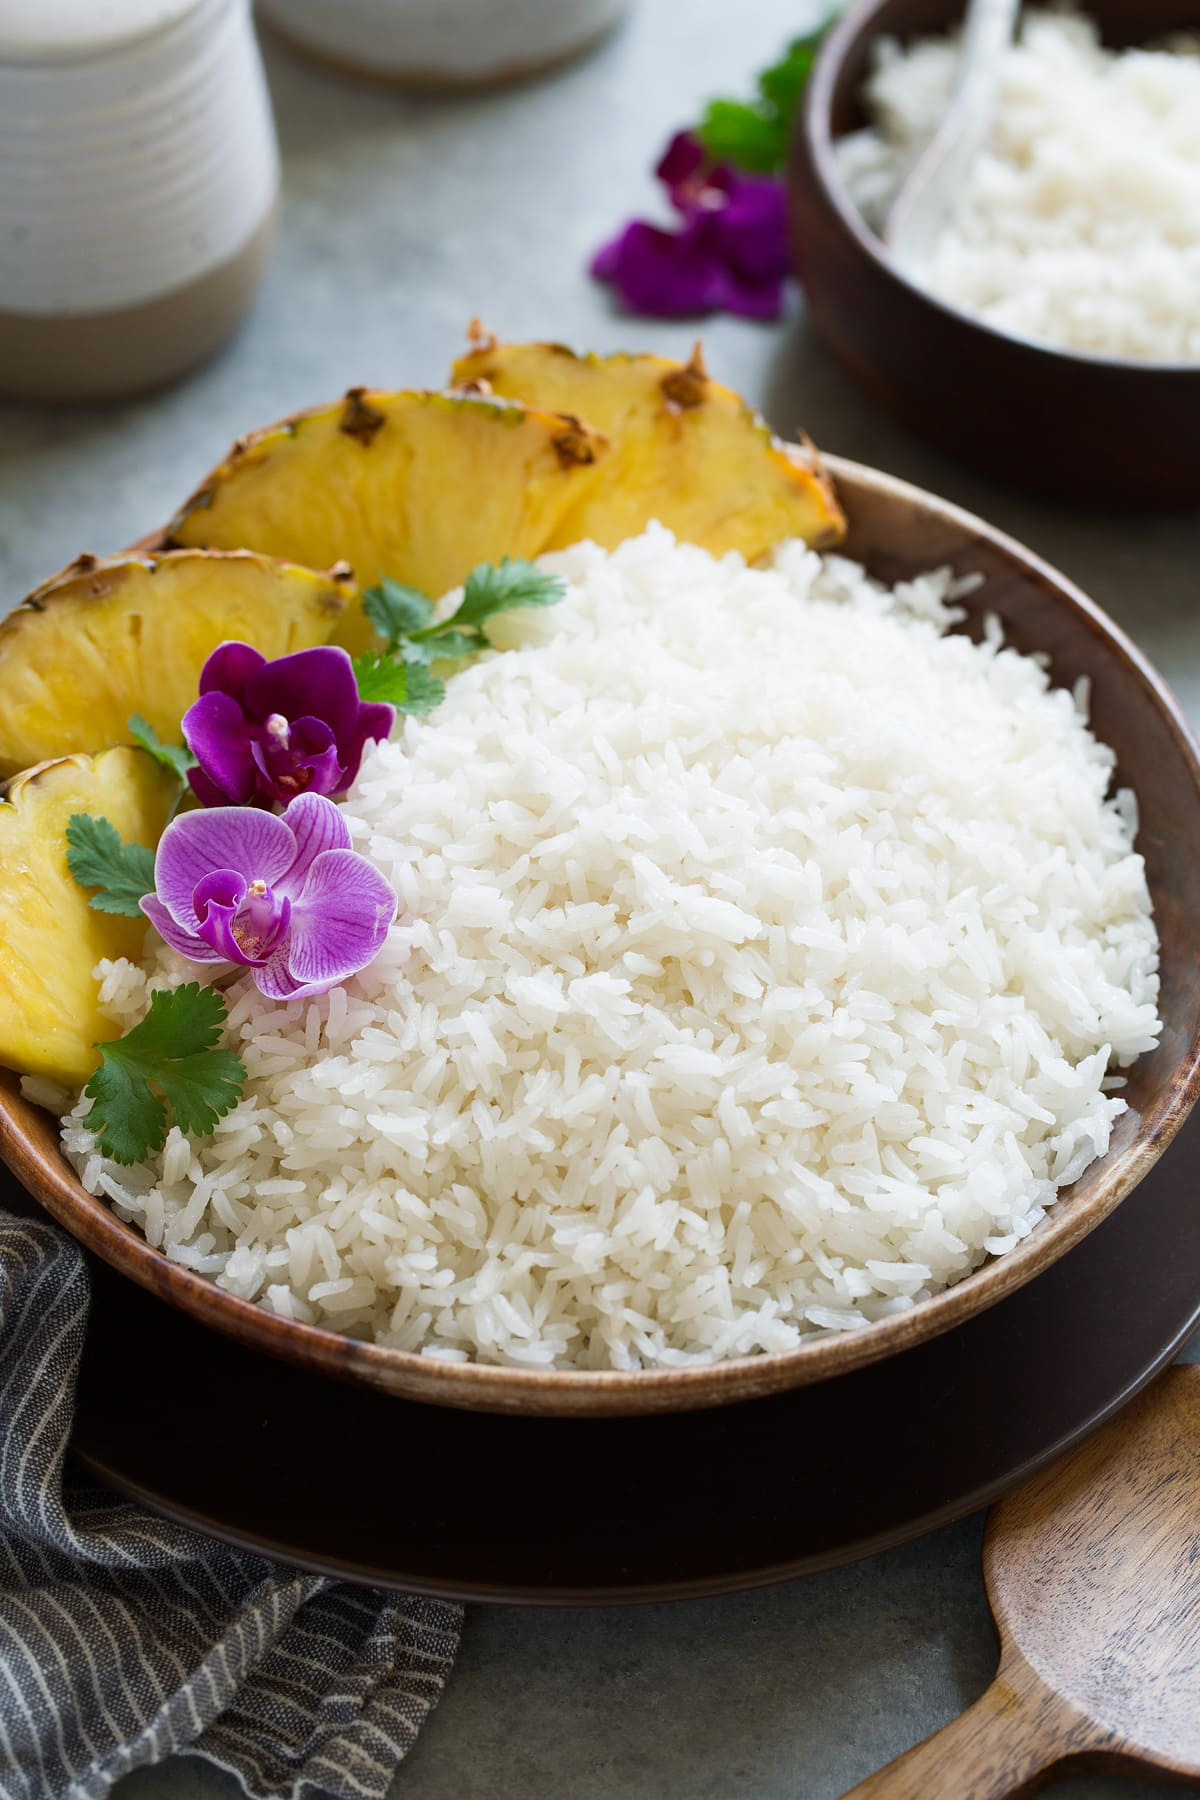 Coconut rice in a wooden serving bowl garnished with orchids, cilantro and pineapple wedges on the side.